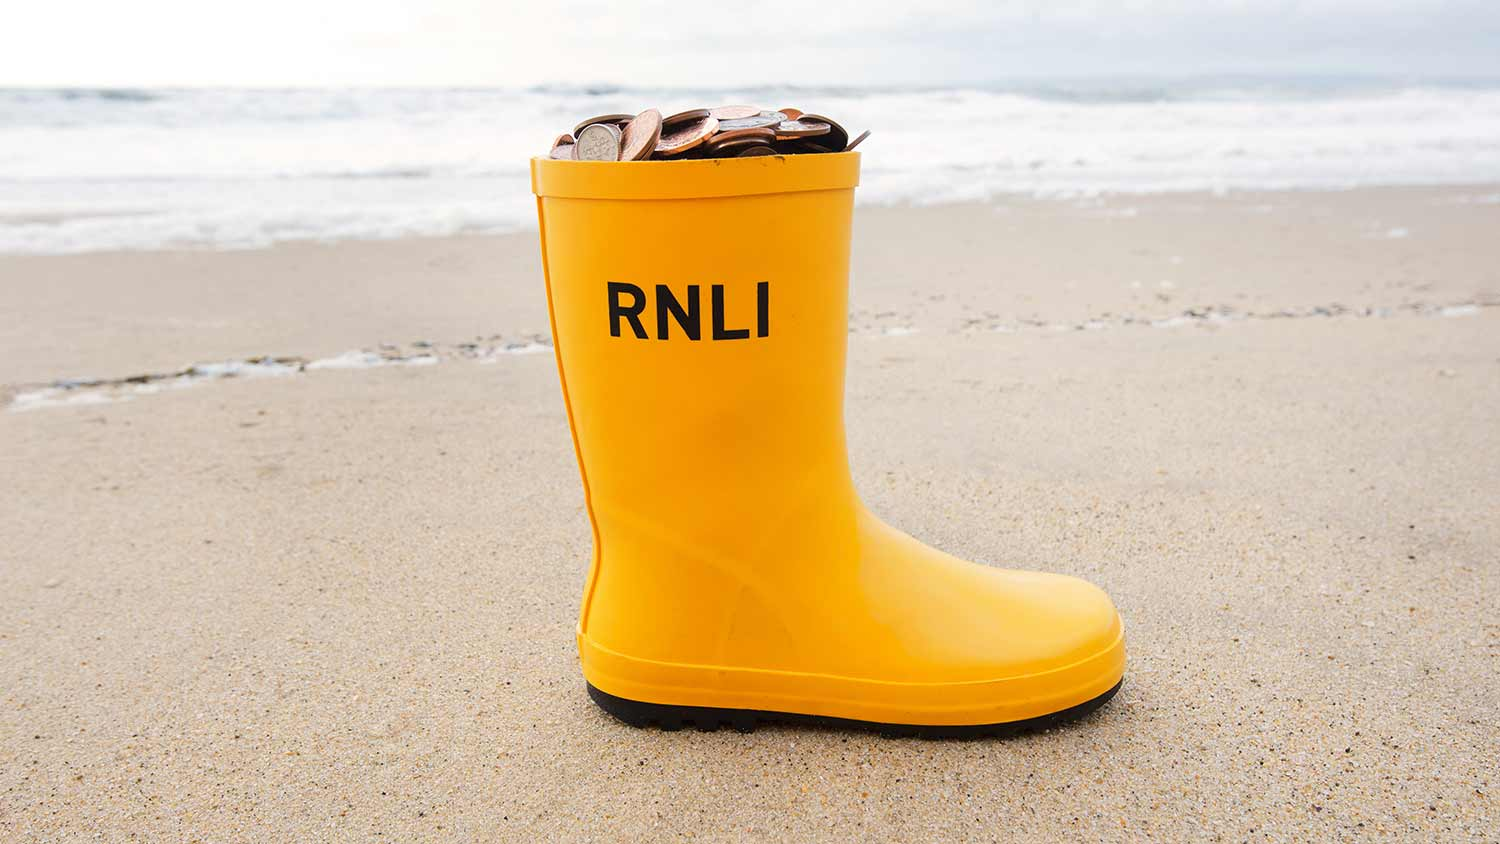 RNLI Welly filled with coins on the beach